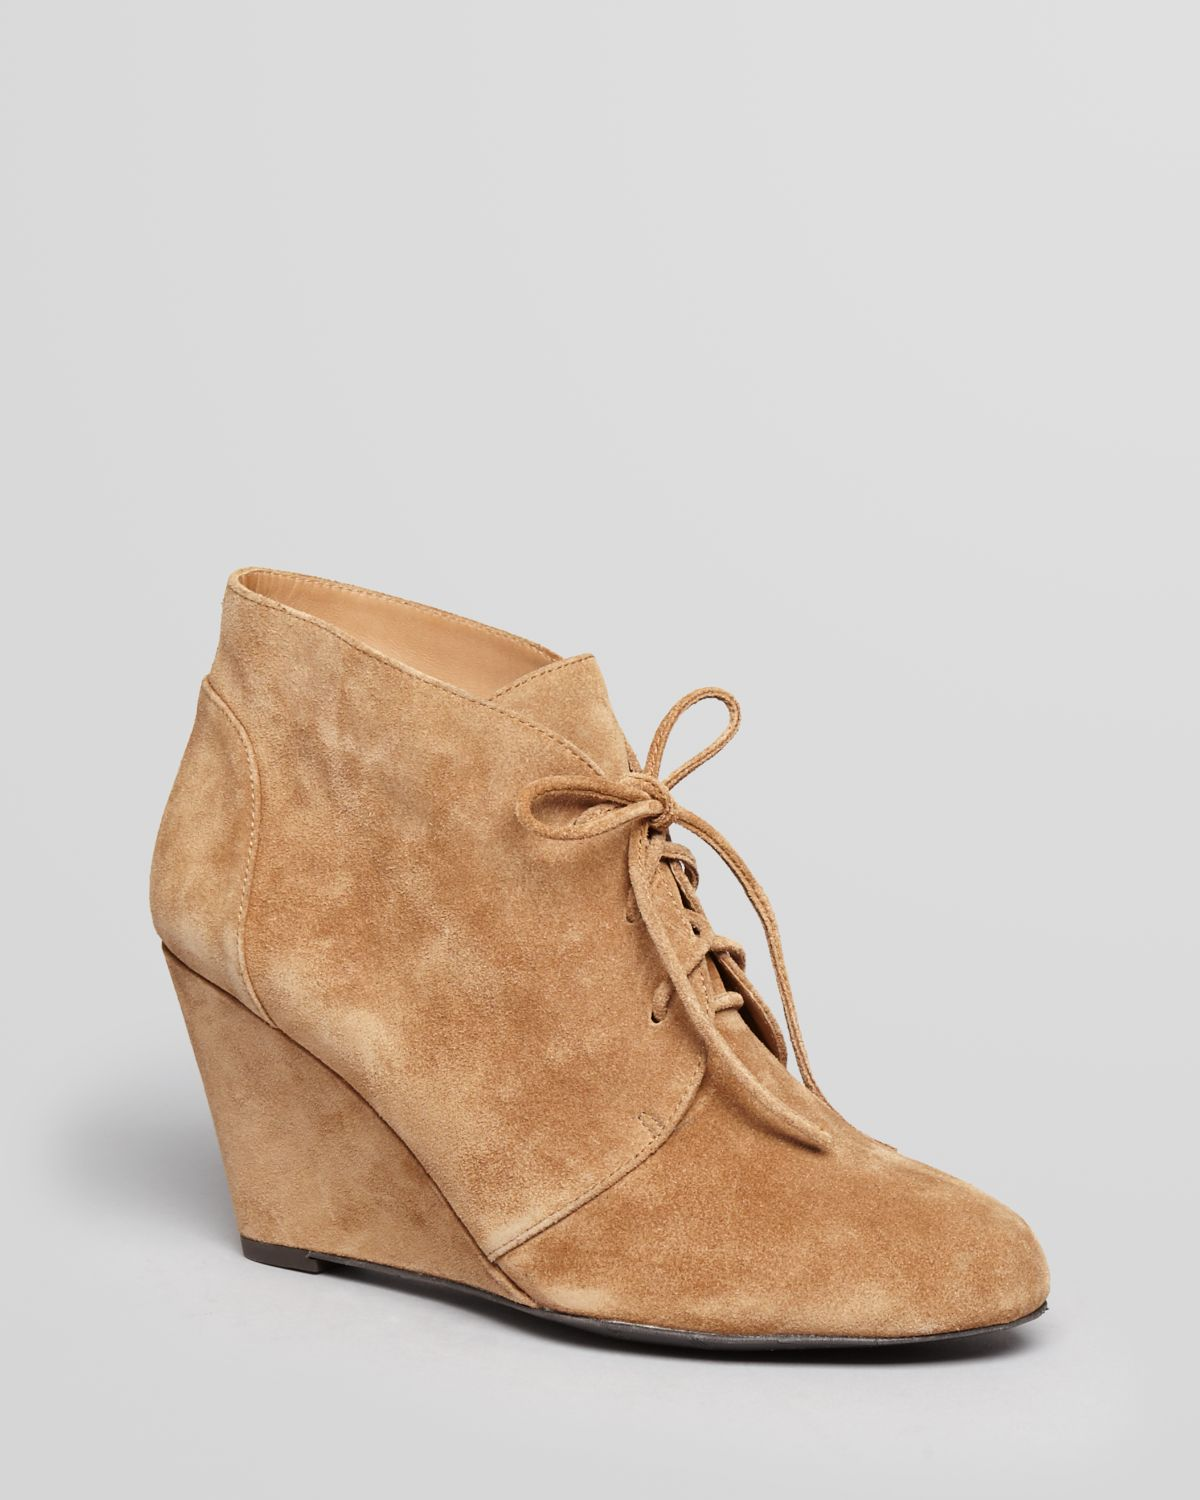 Via Spiga Lace Up Wedge Booties - Fedora | Bloomingdale's